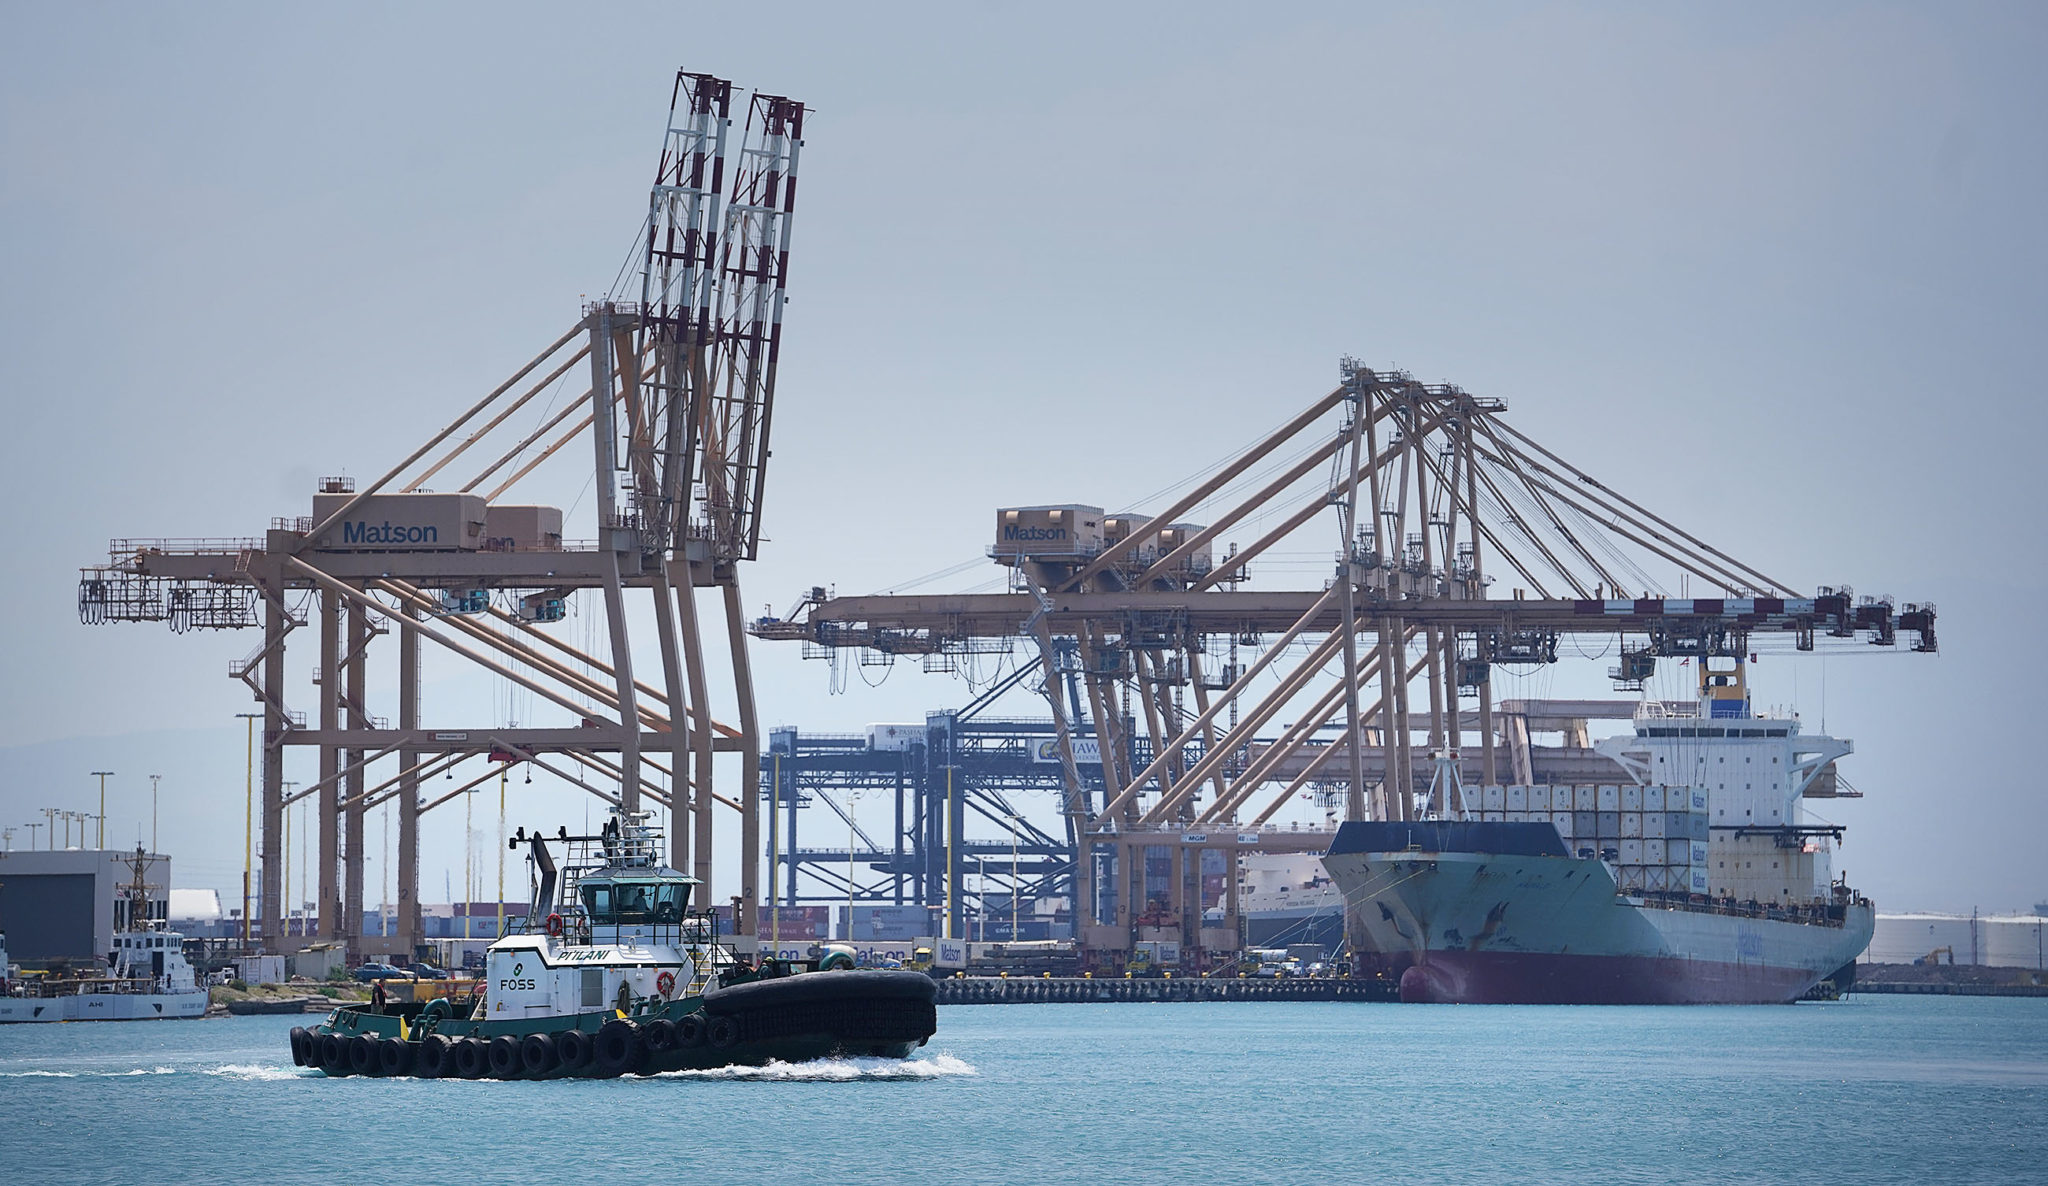 Honolulu Harbor with Matson Container ship and cranes.